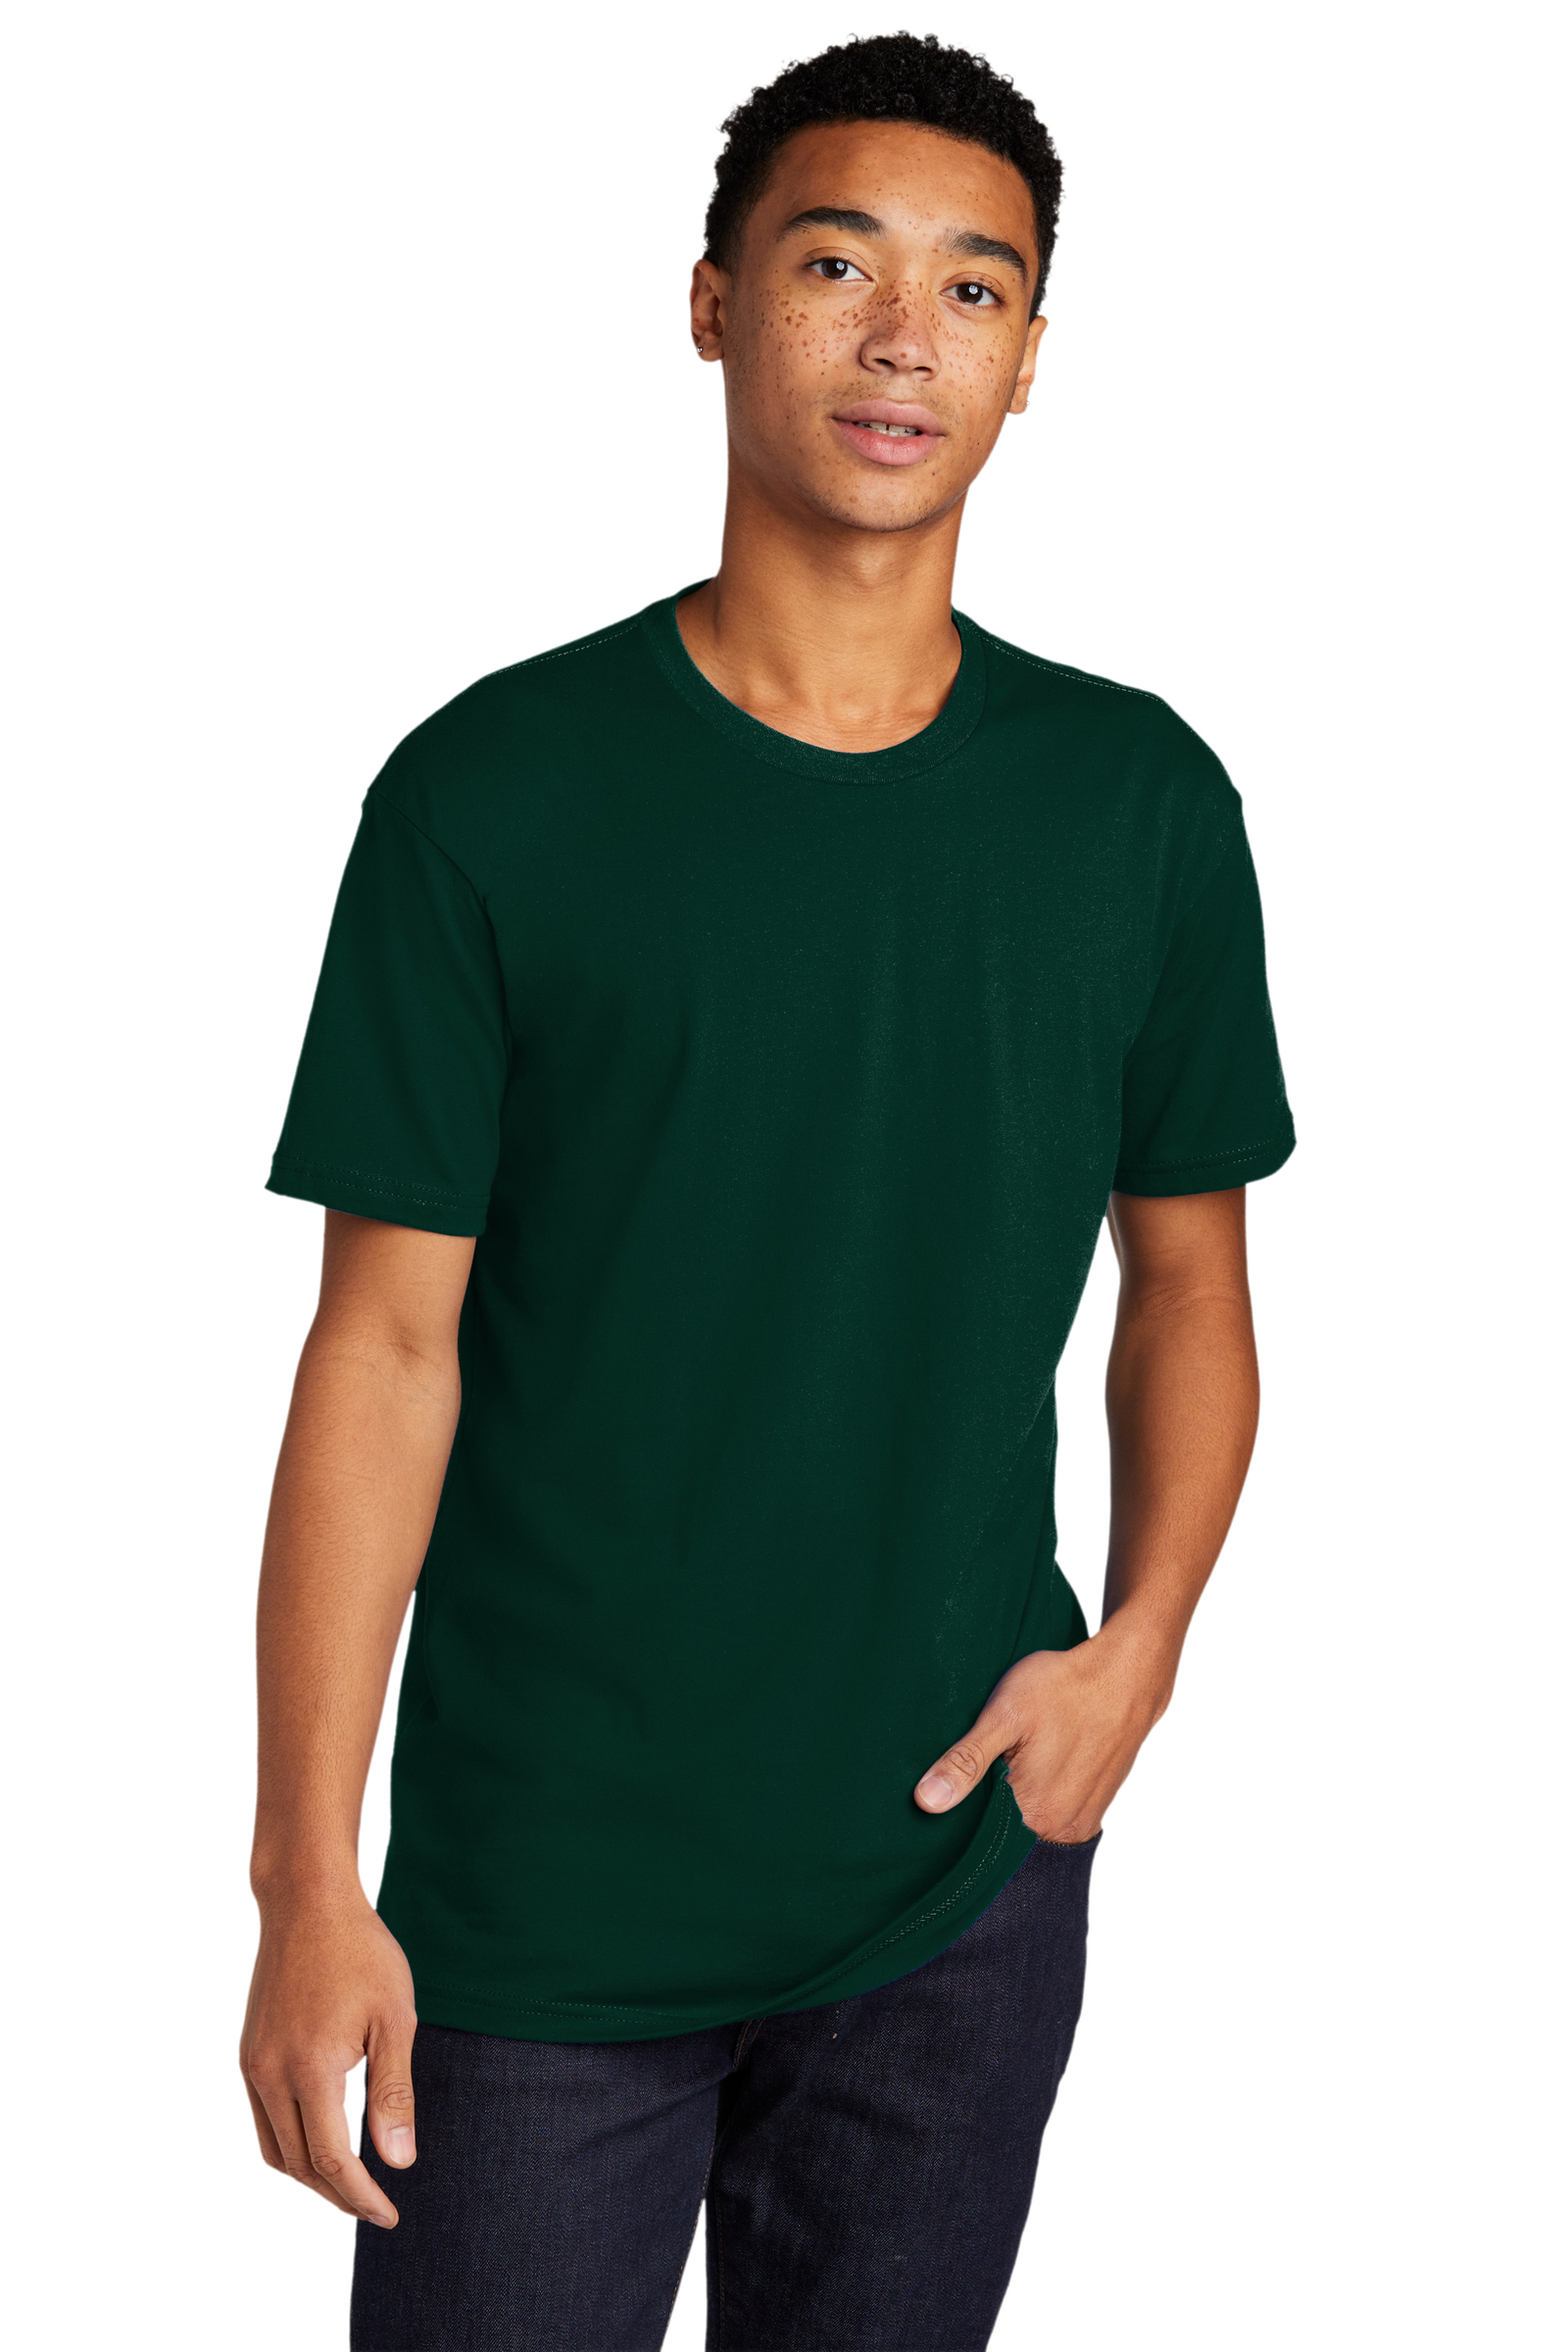 Next Level Embroidered Men's Cotton Tee